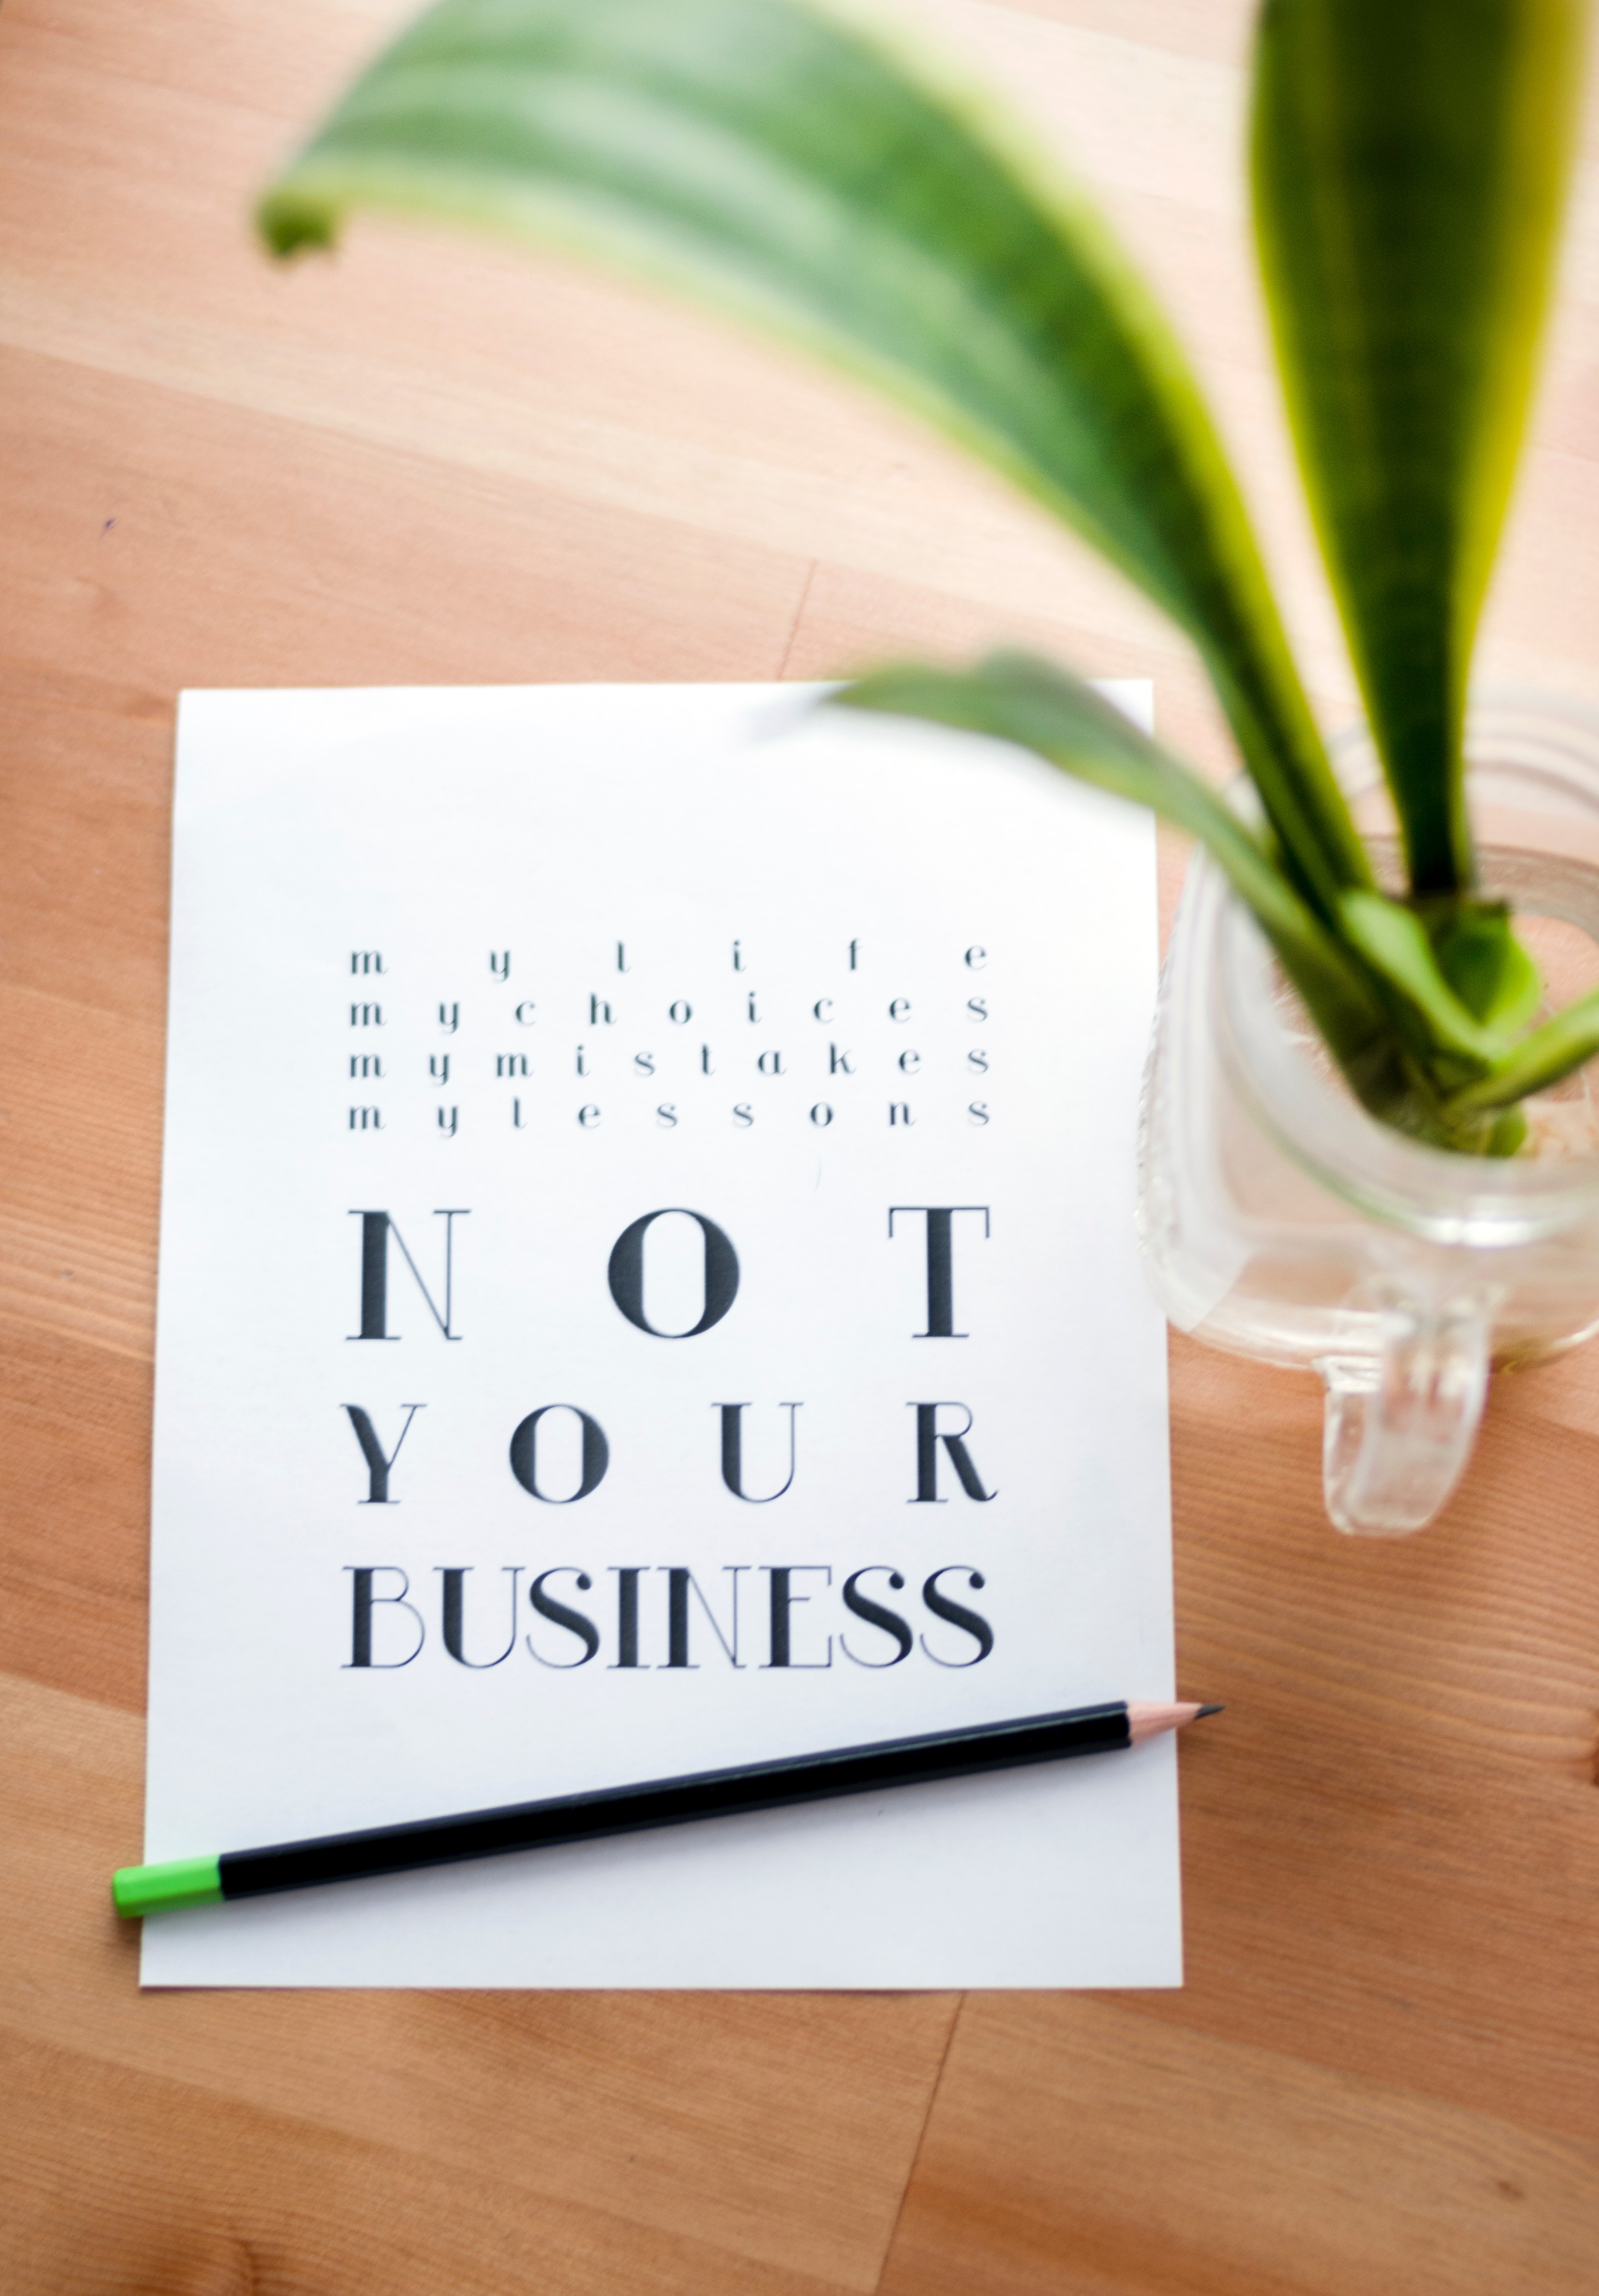 Not Your Business Print Poster, Plant, Wooden, Wood, Vase, HQ Photo